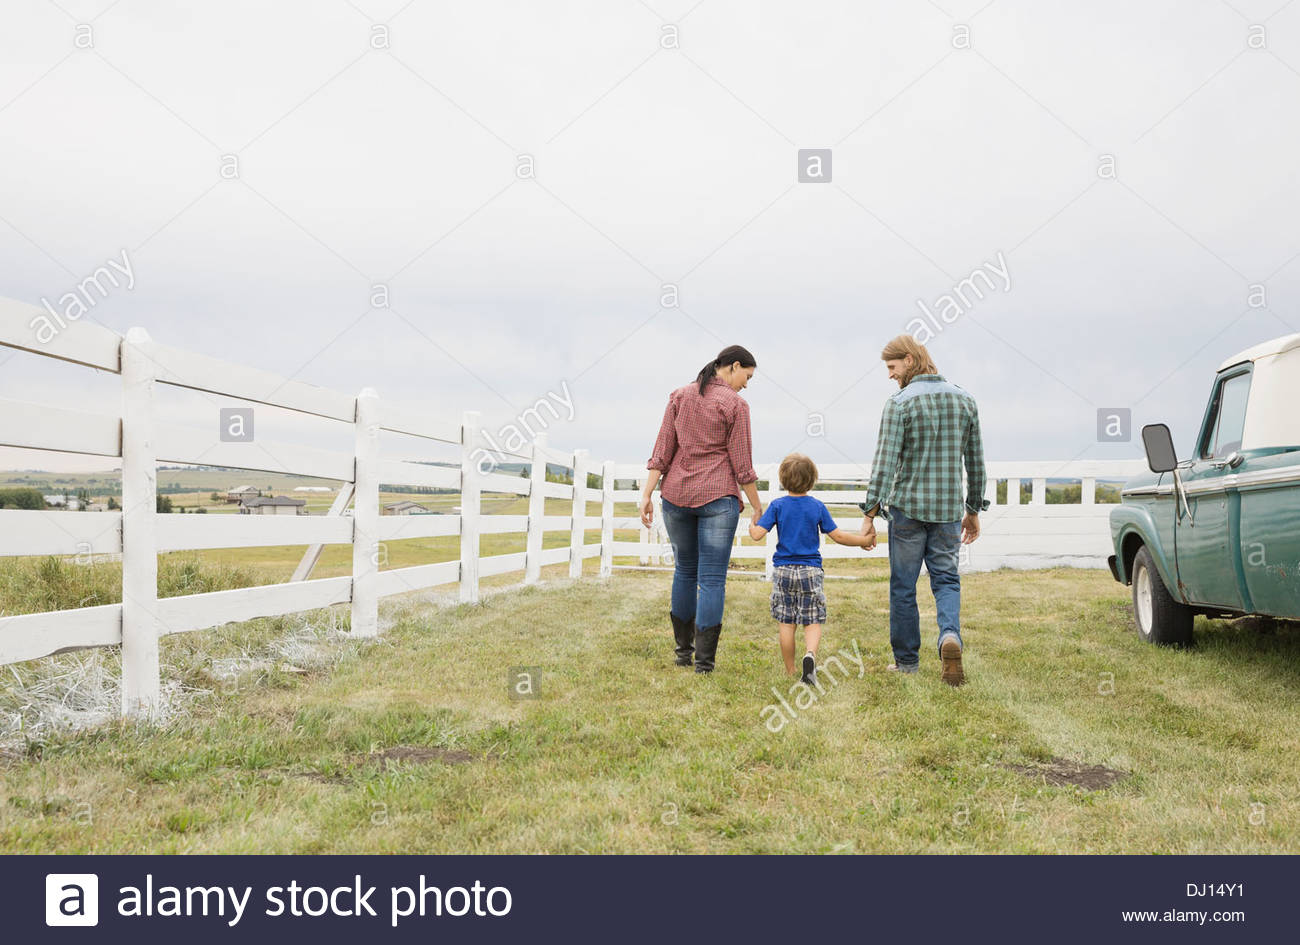 Family of three walking together on farm - Stock Image